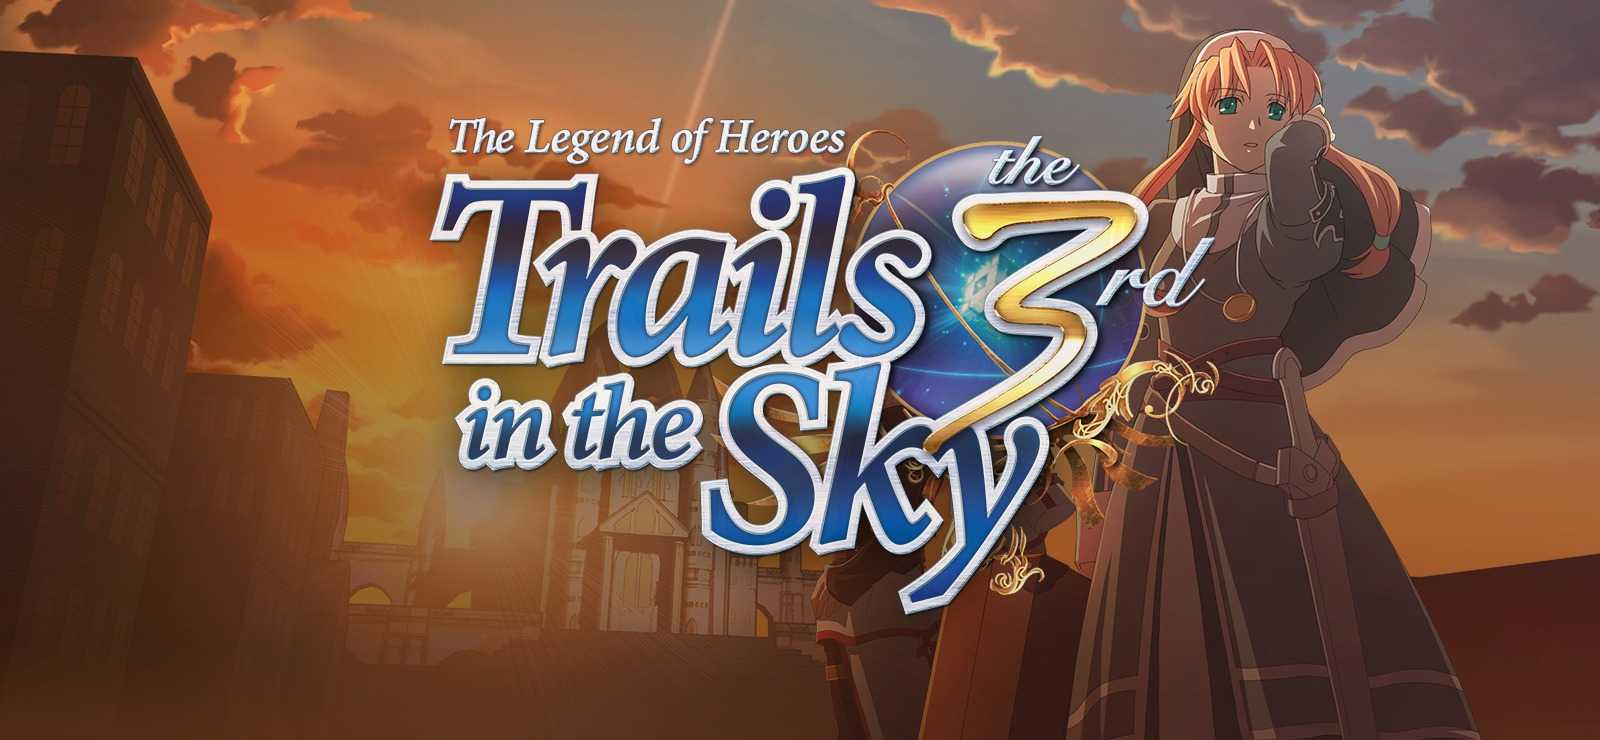 the-legend-of-heroes-trails-in-the-sky-the-3rd